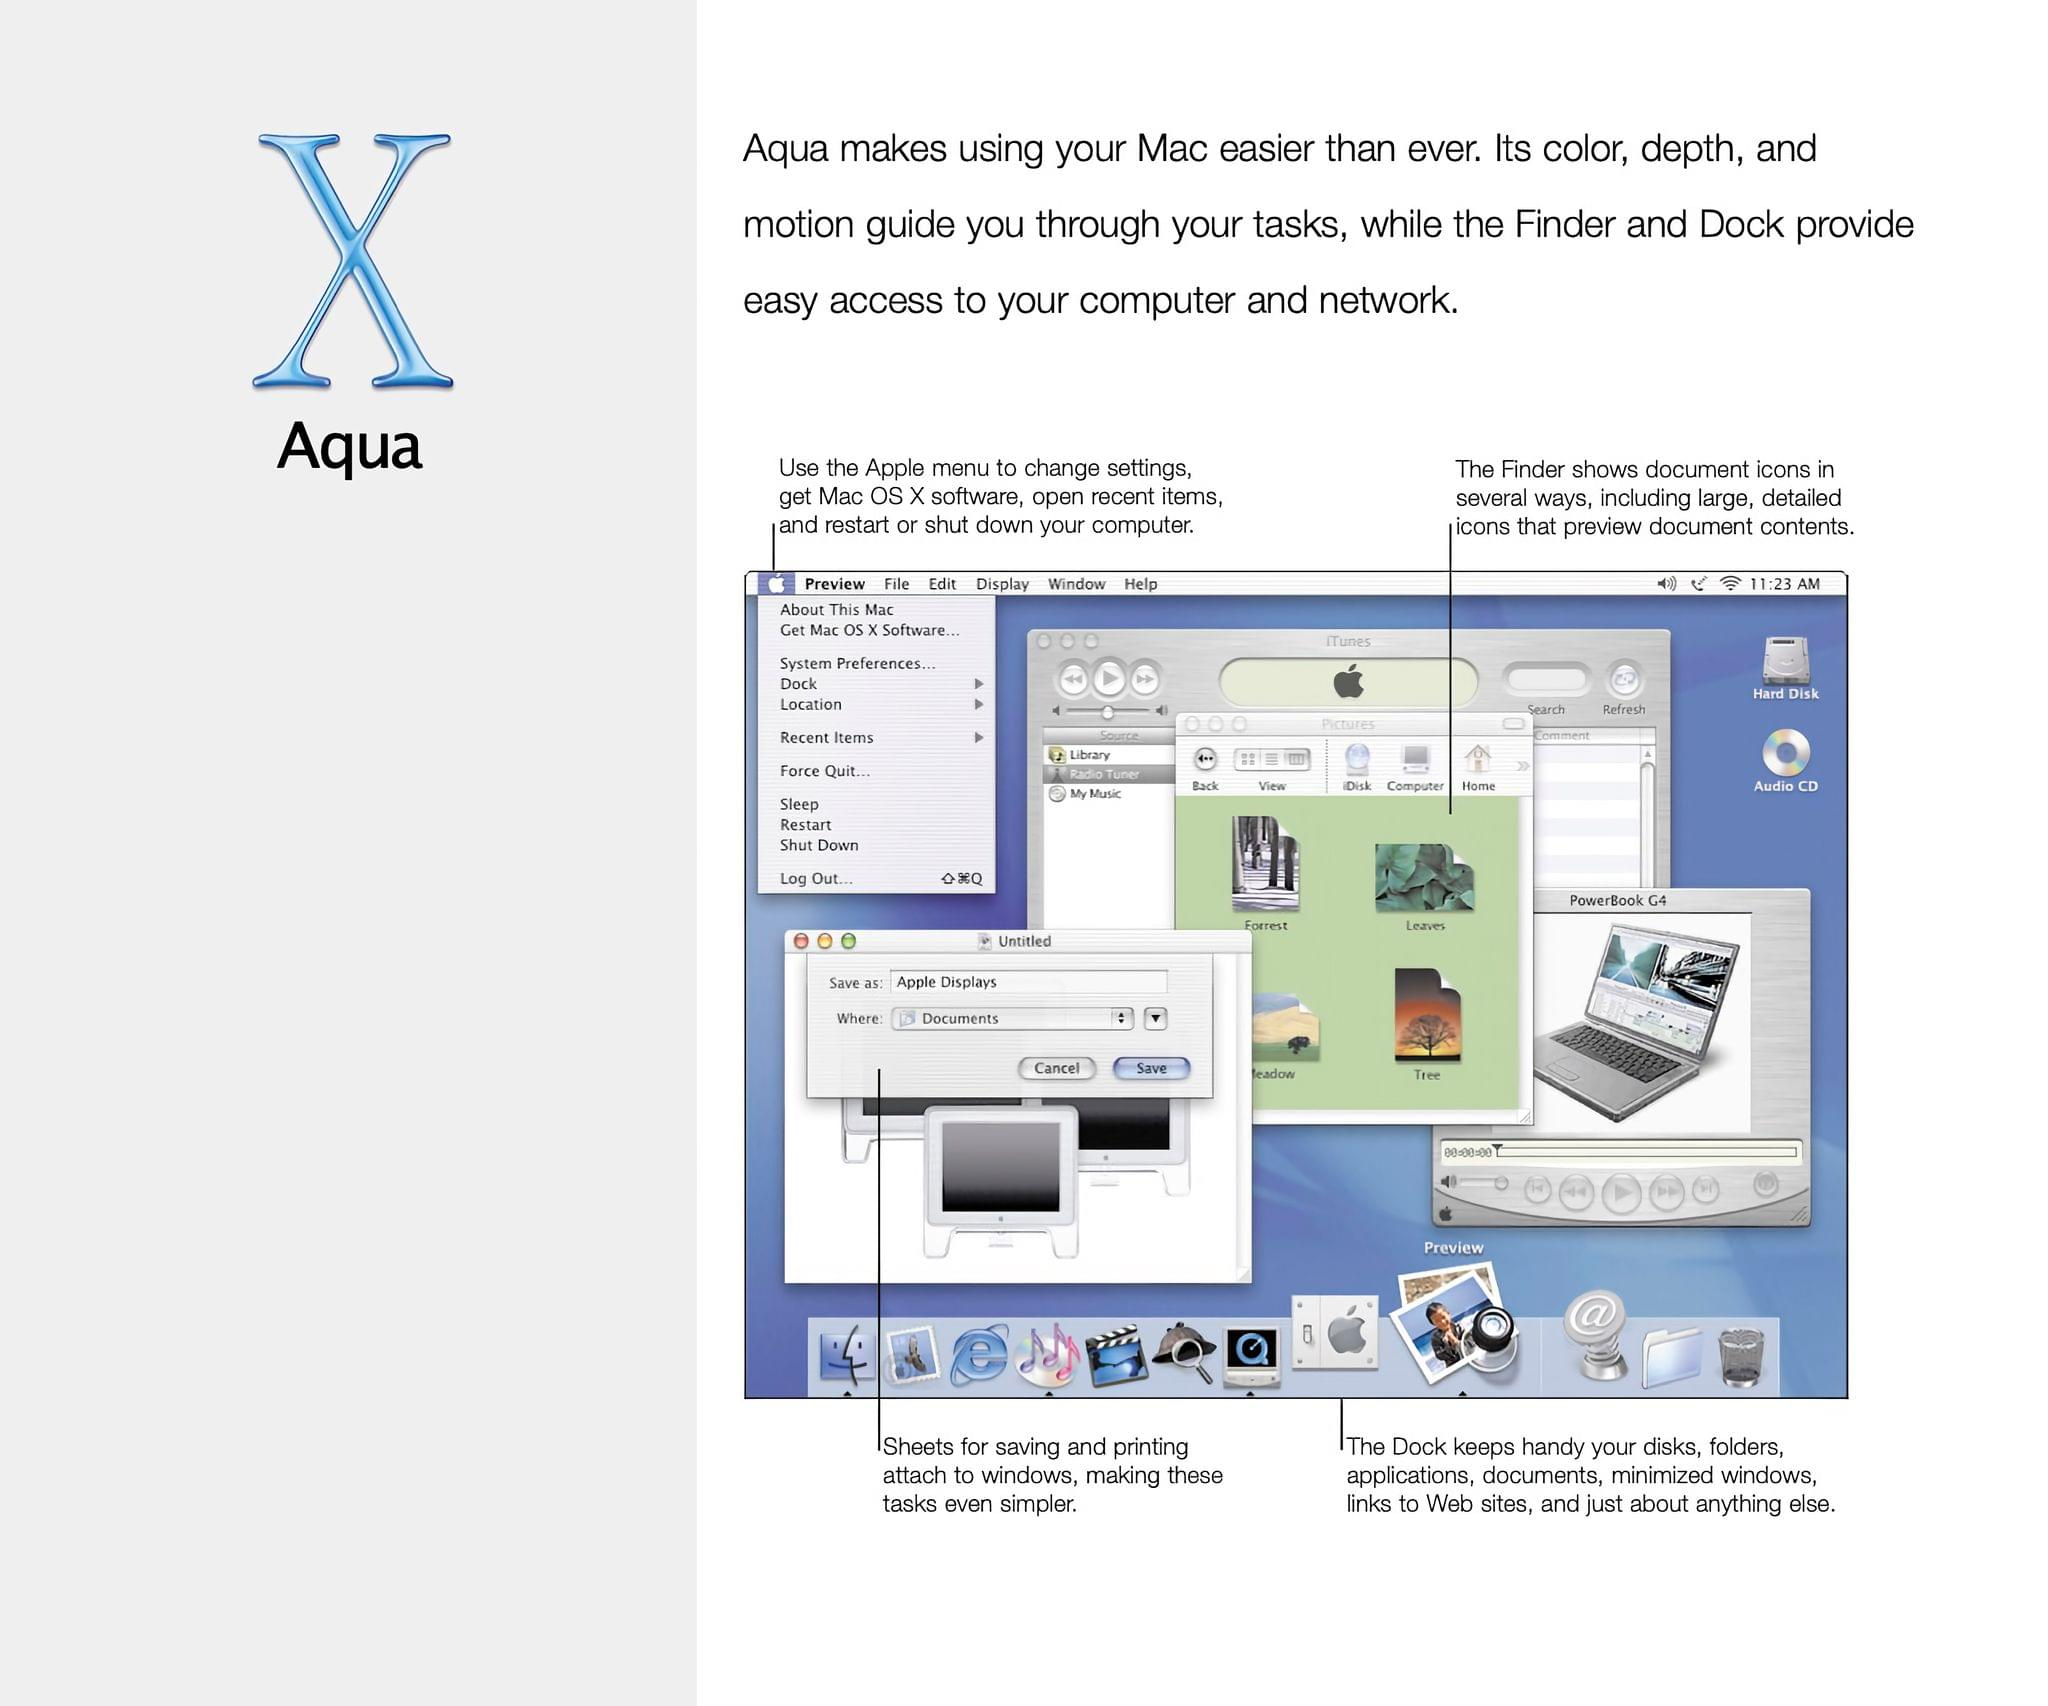 A tour of Aqua from OS X's user manual.